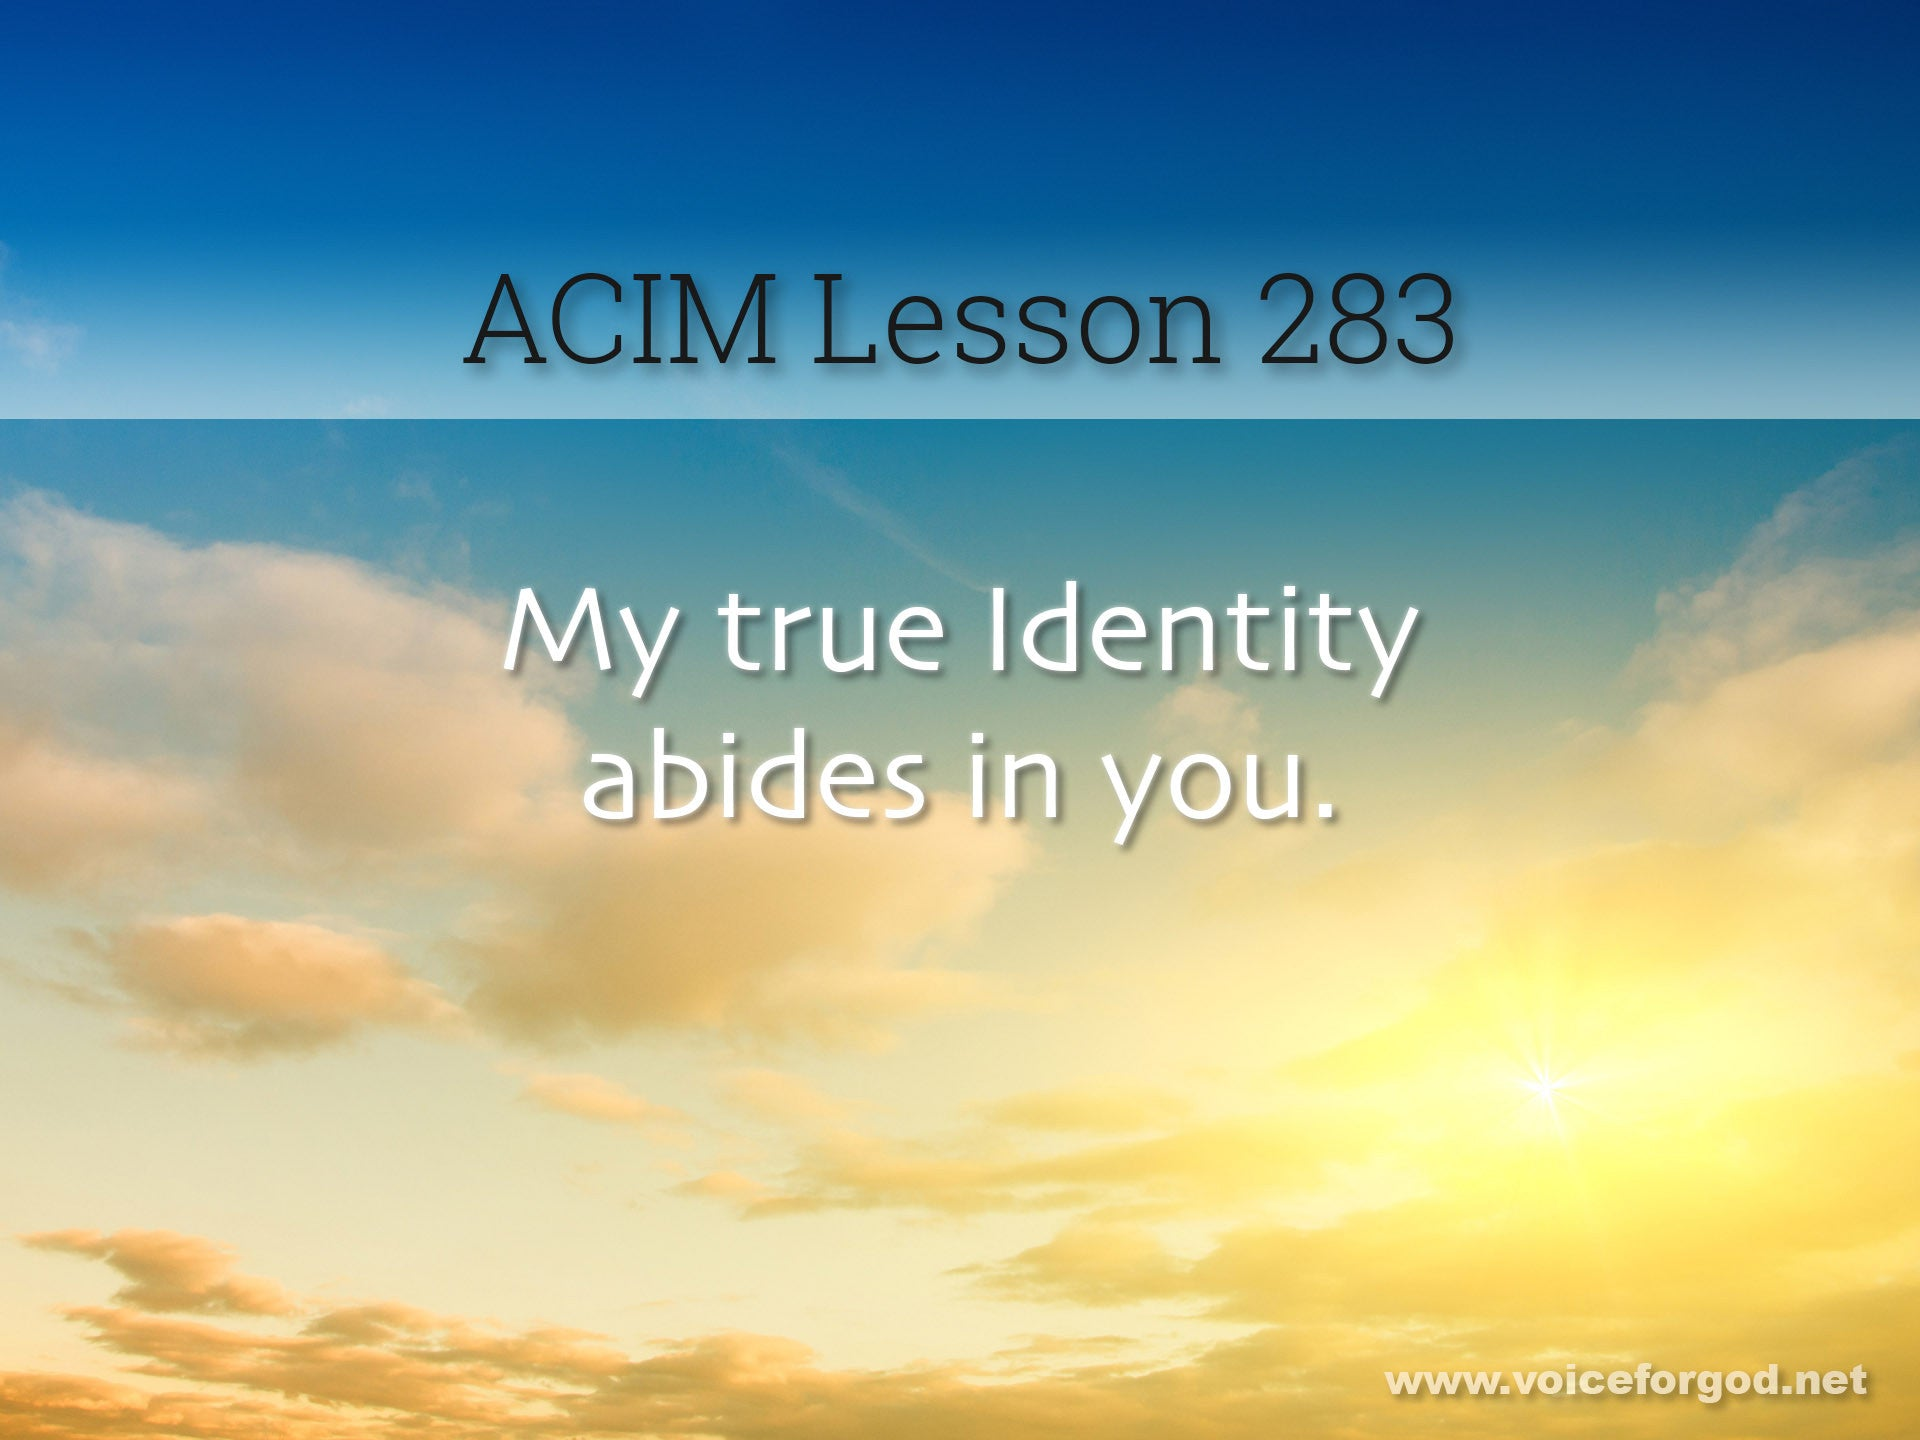 ACIM Lesson 283 - A Course in Miracles Workbook Lesson 283